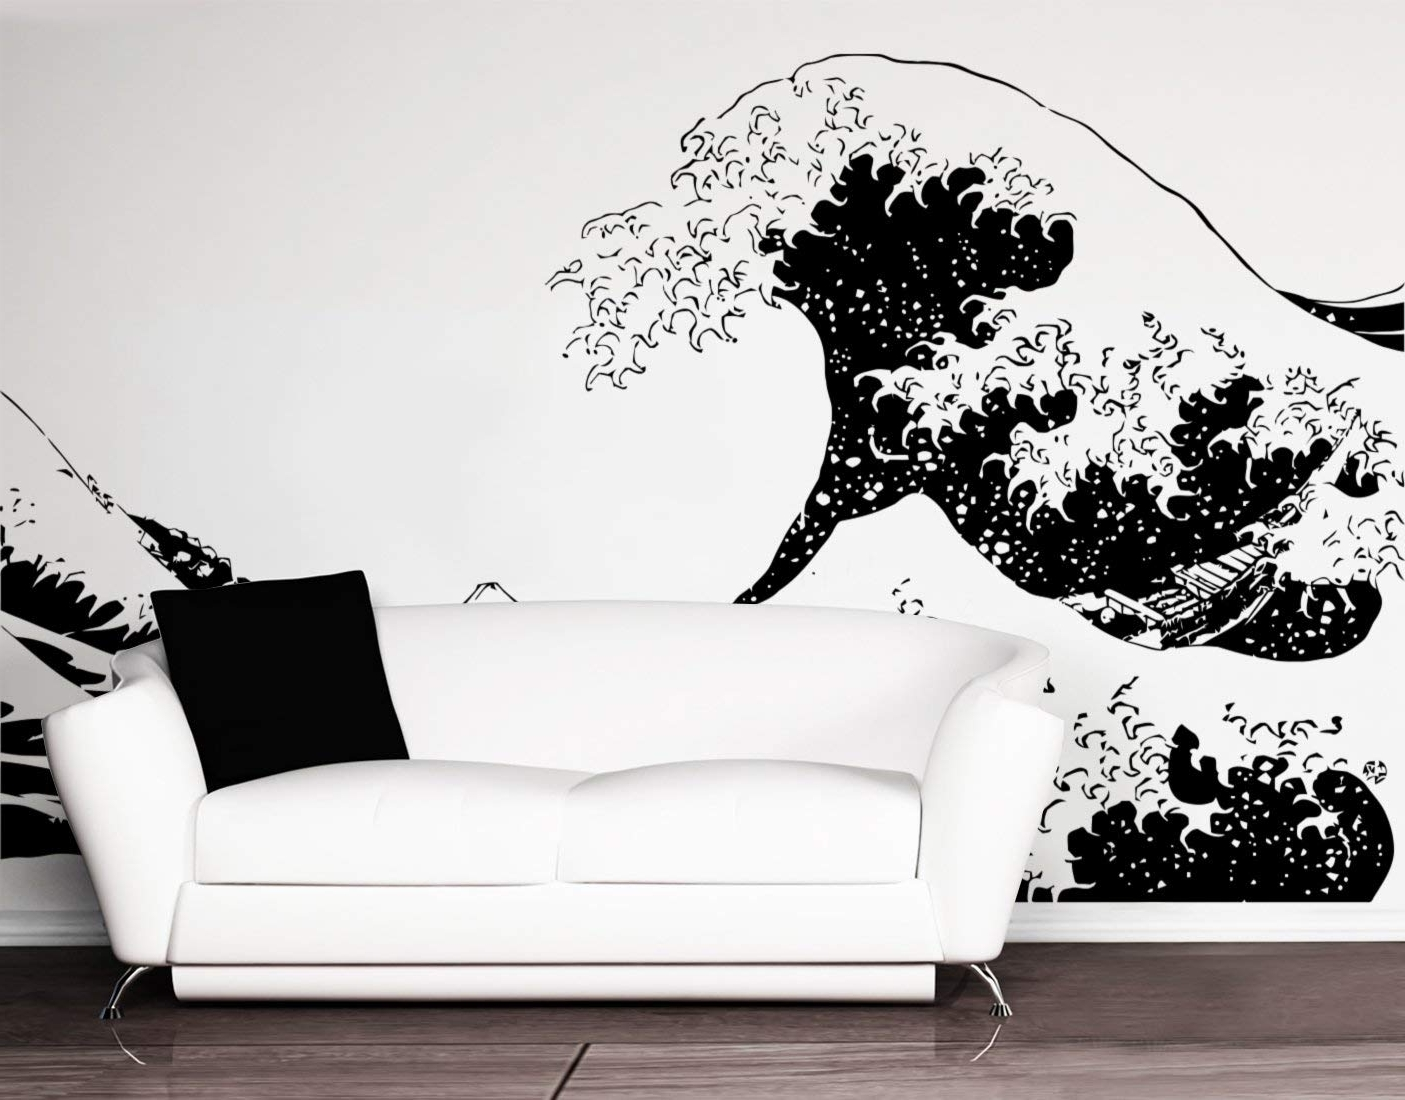 Trendy H Dfiil Sl Photo Album For Website Japanese Wall Art – Best Home With Regard To Japanese Wall Art (View 14 of 15)